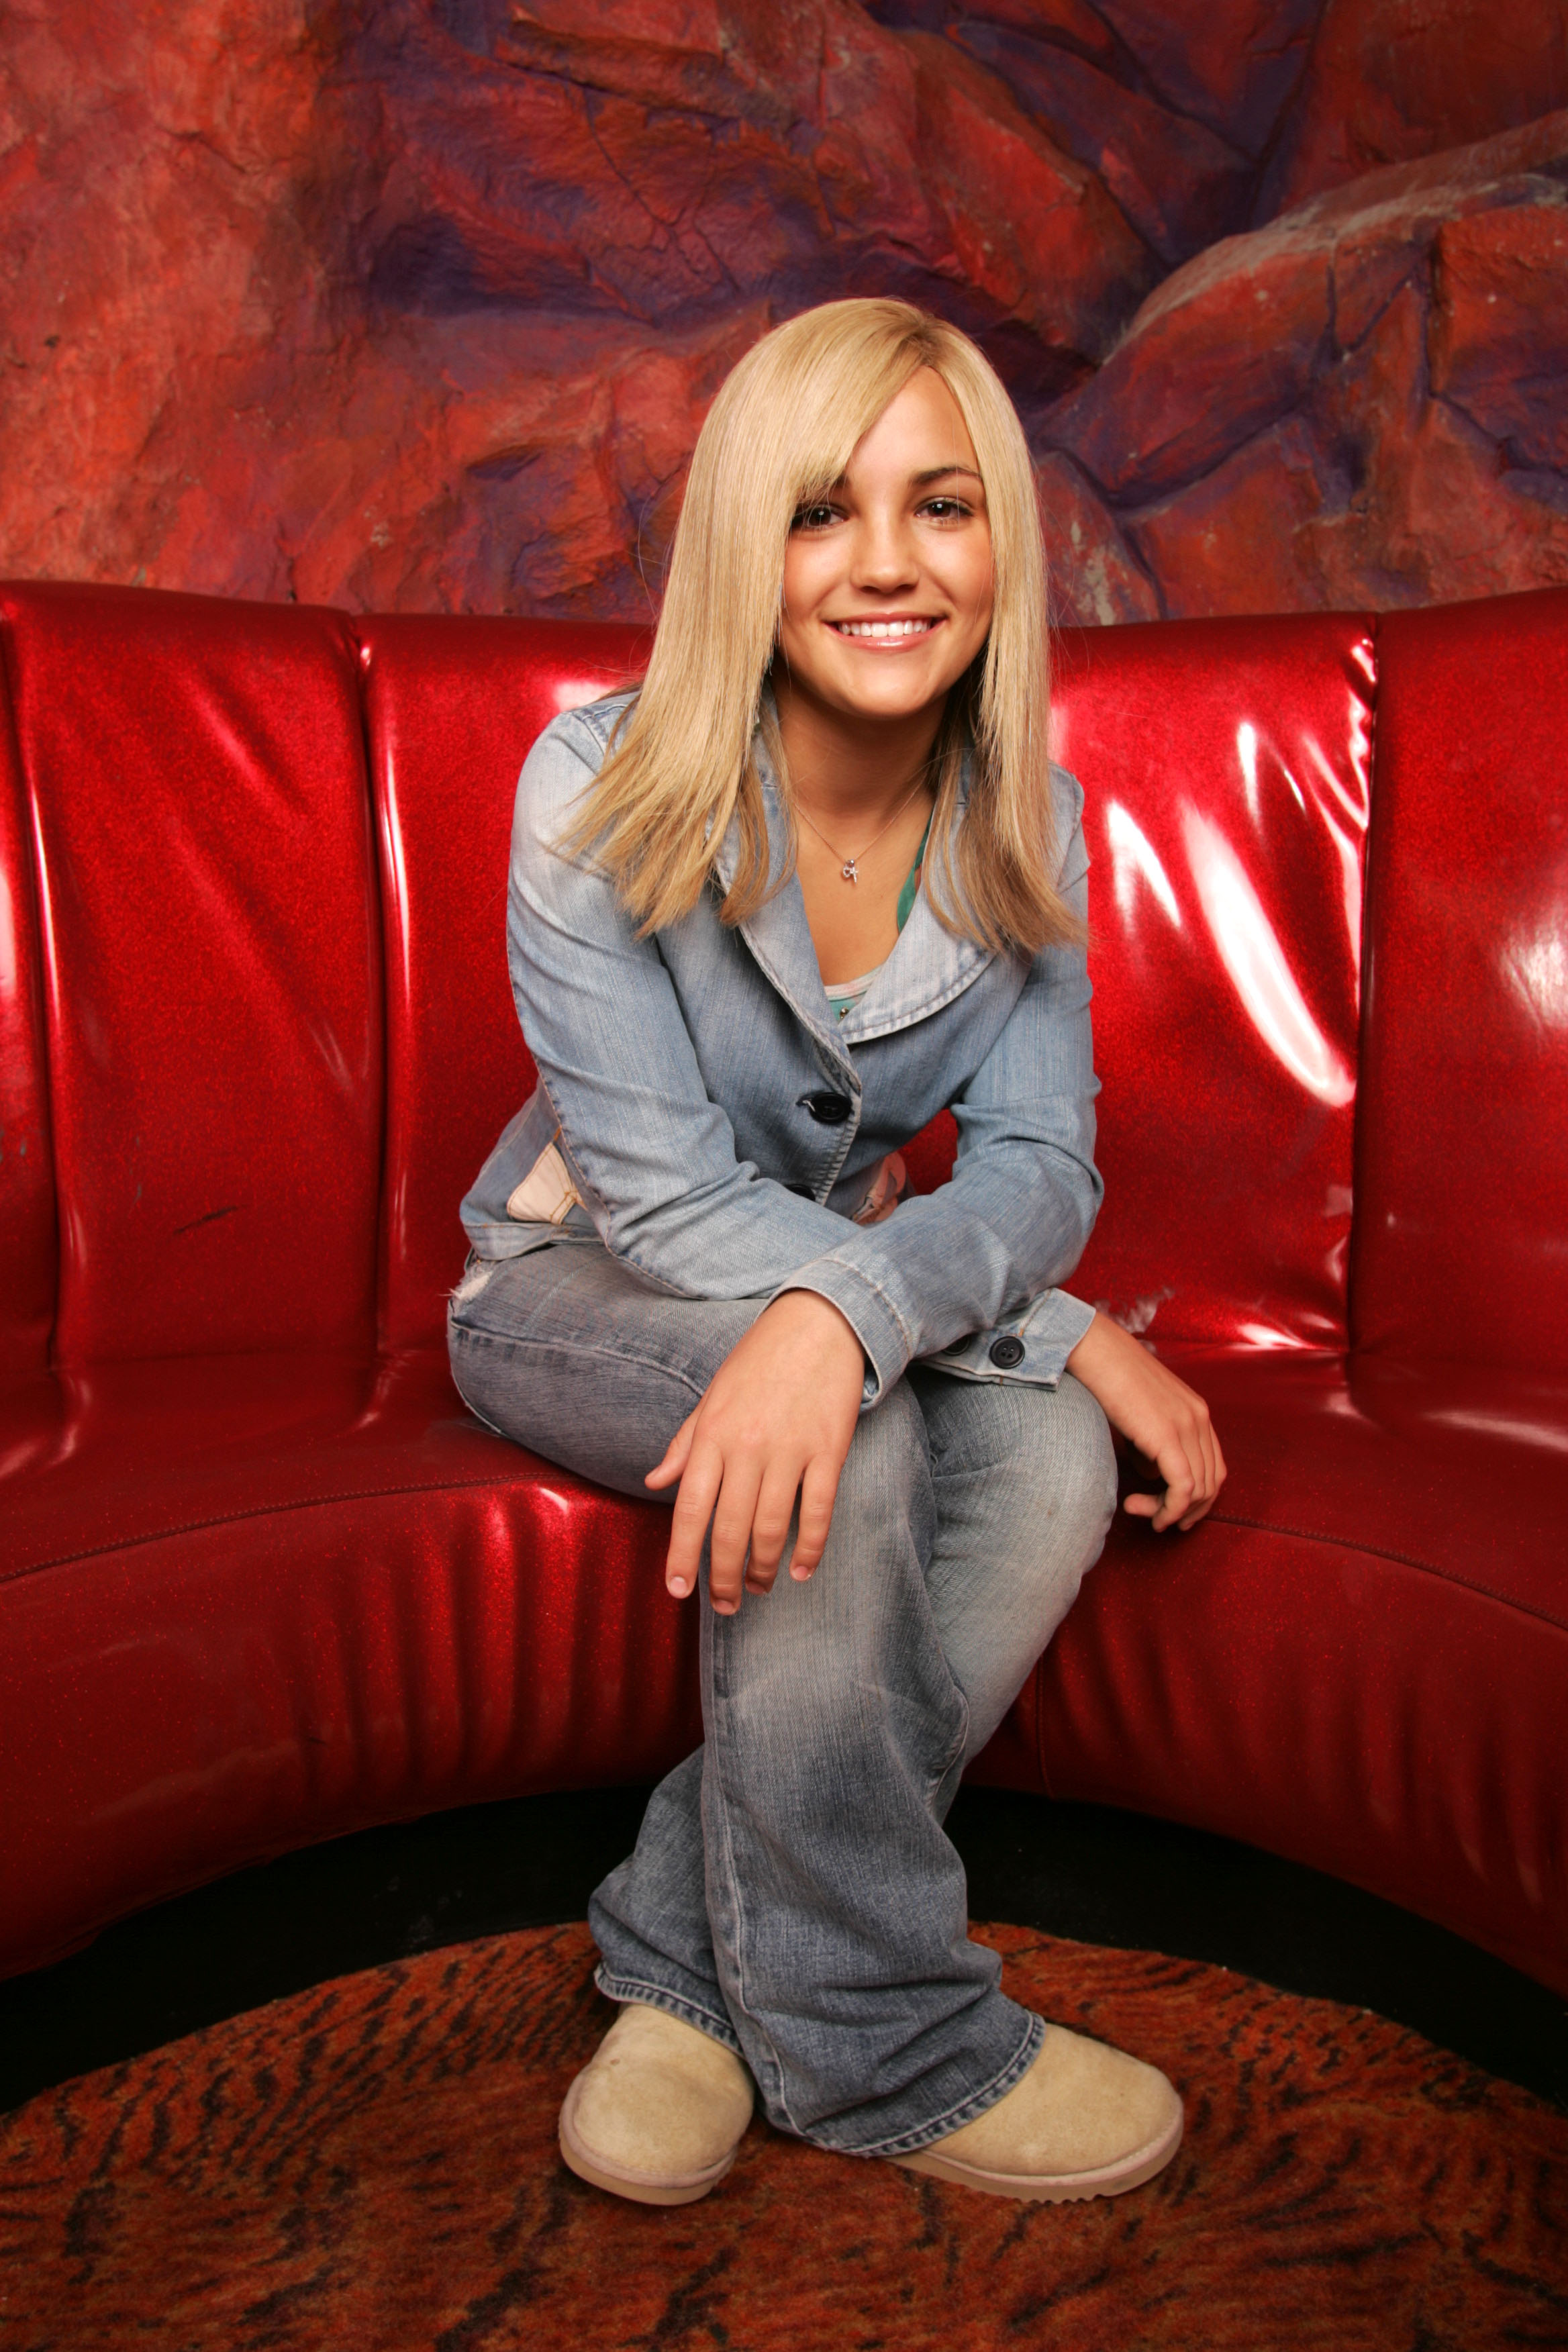 Actress Jamie Lynn Spears poses for a portrait on Jan. 6, 2005 in New York City.